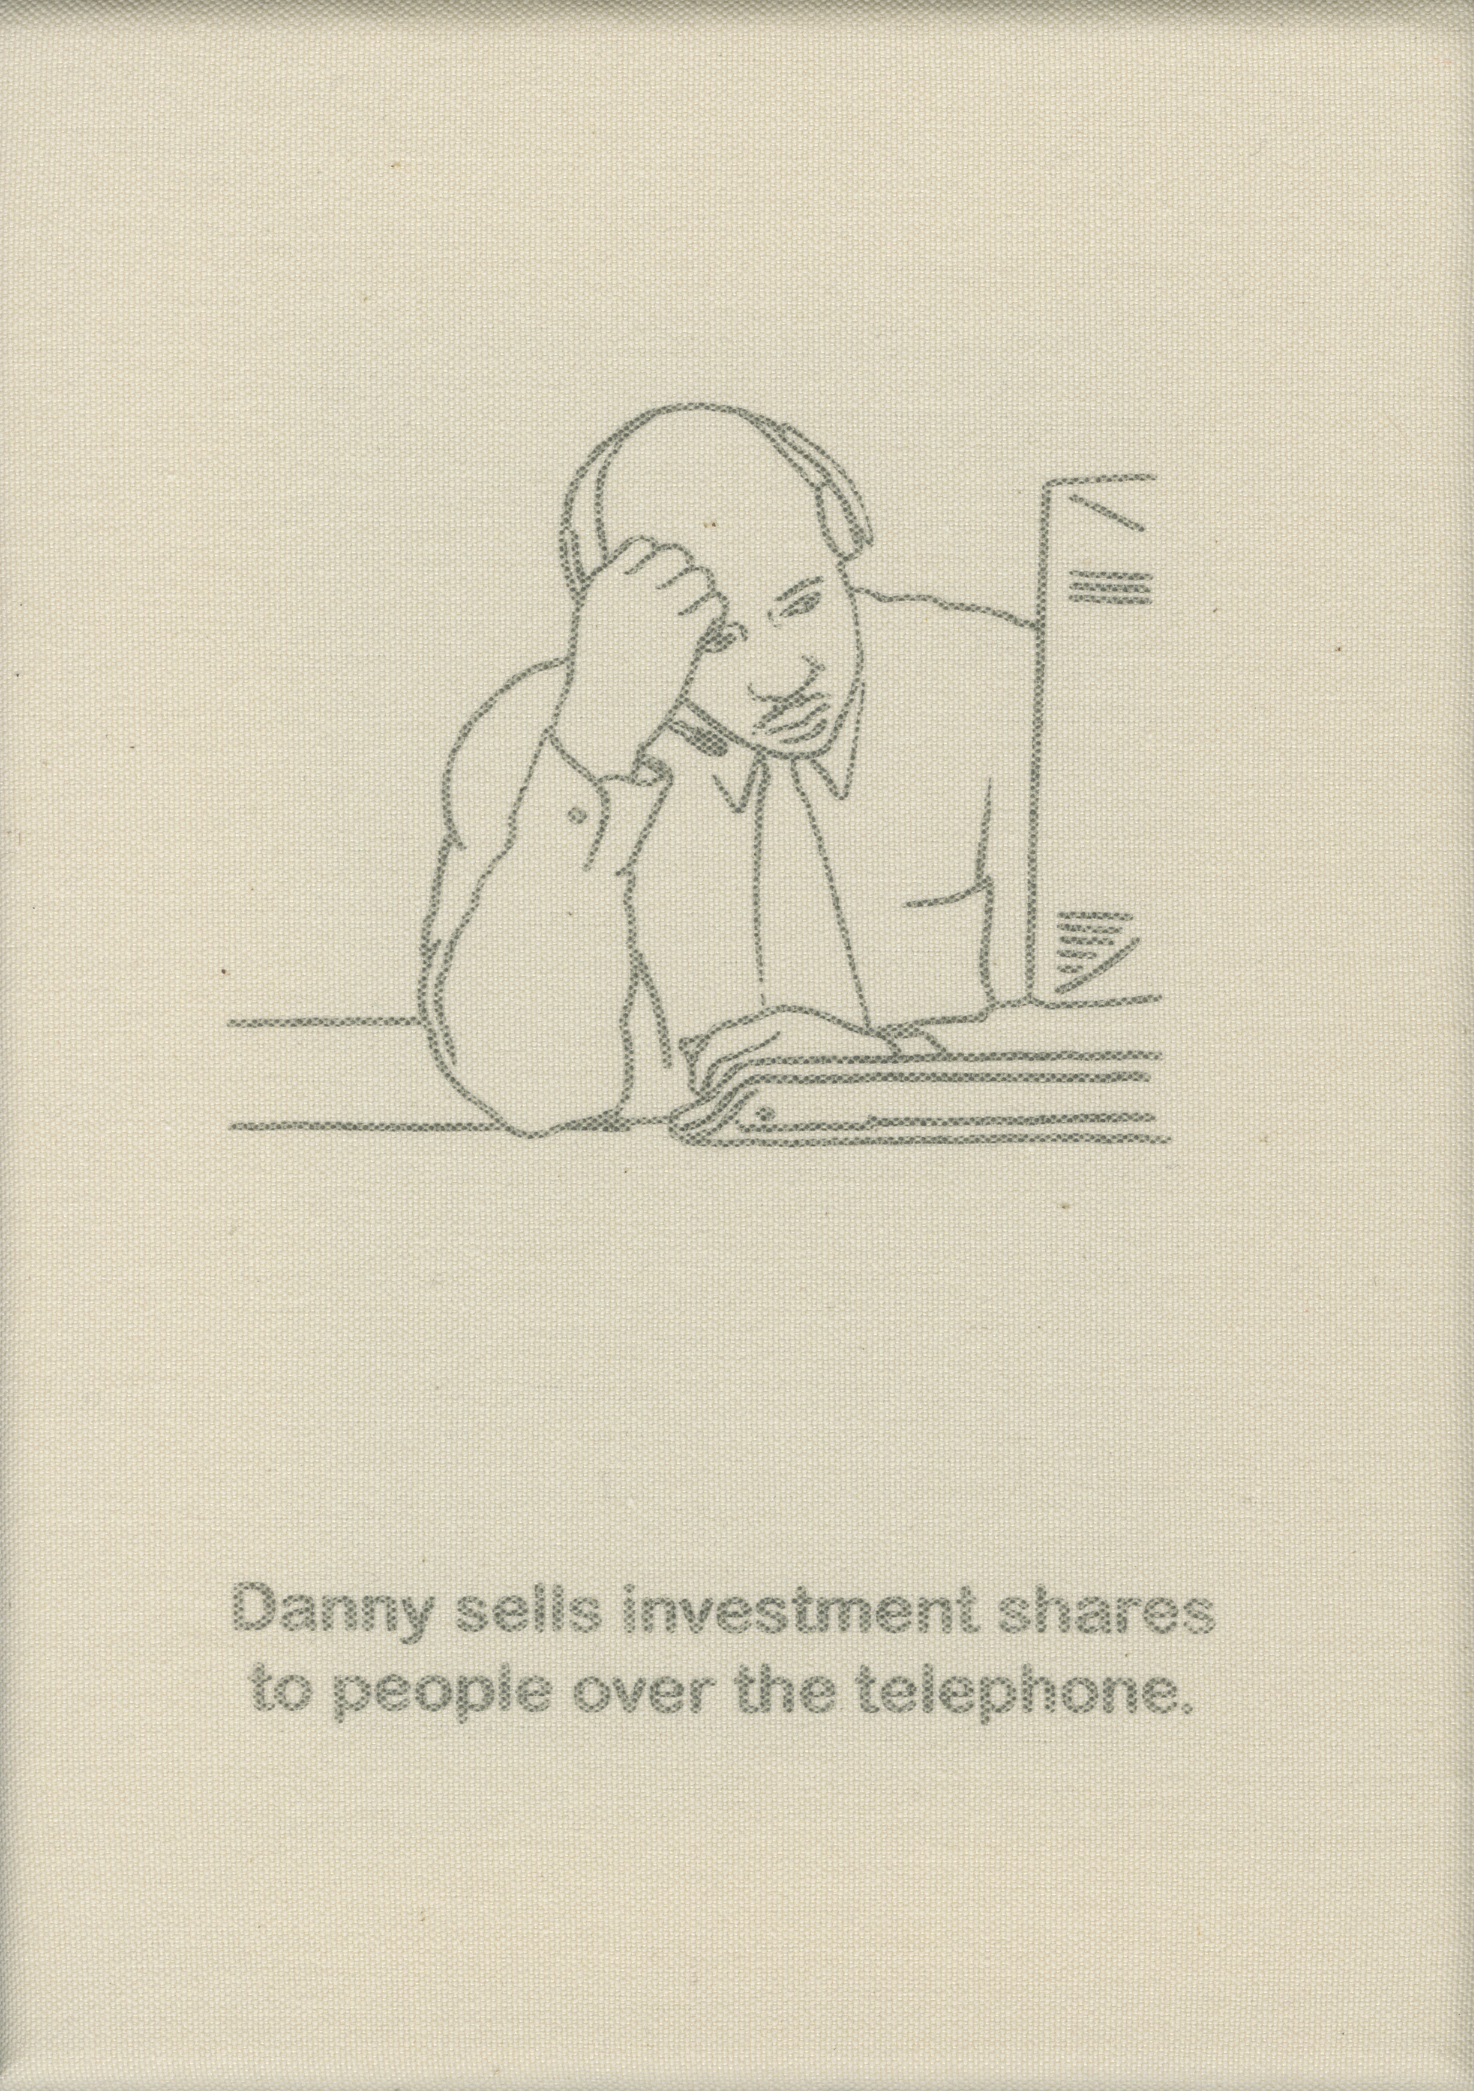 Danny sells investment shares over the phone.